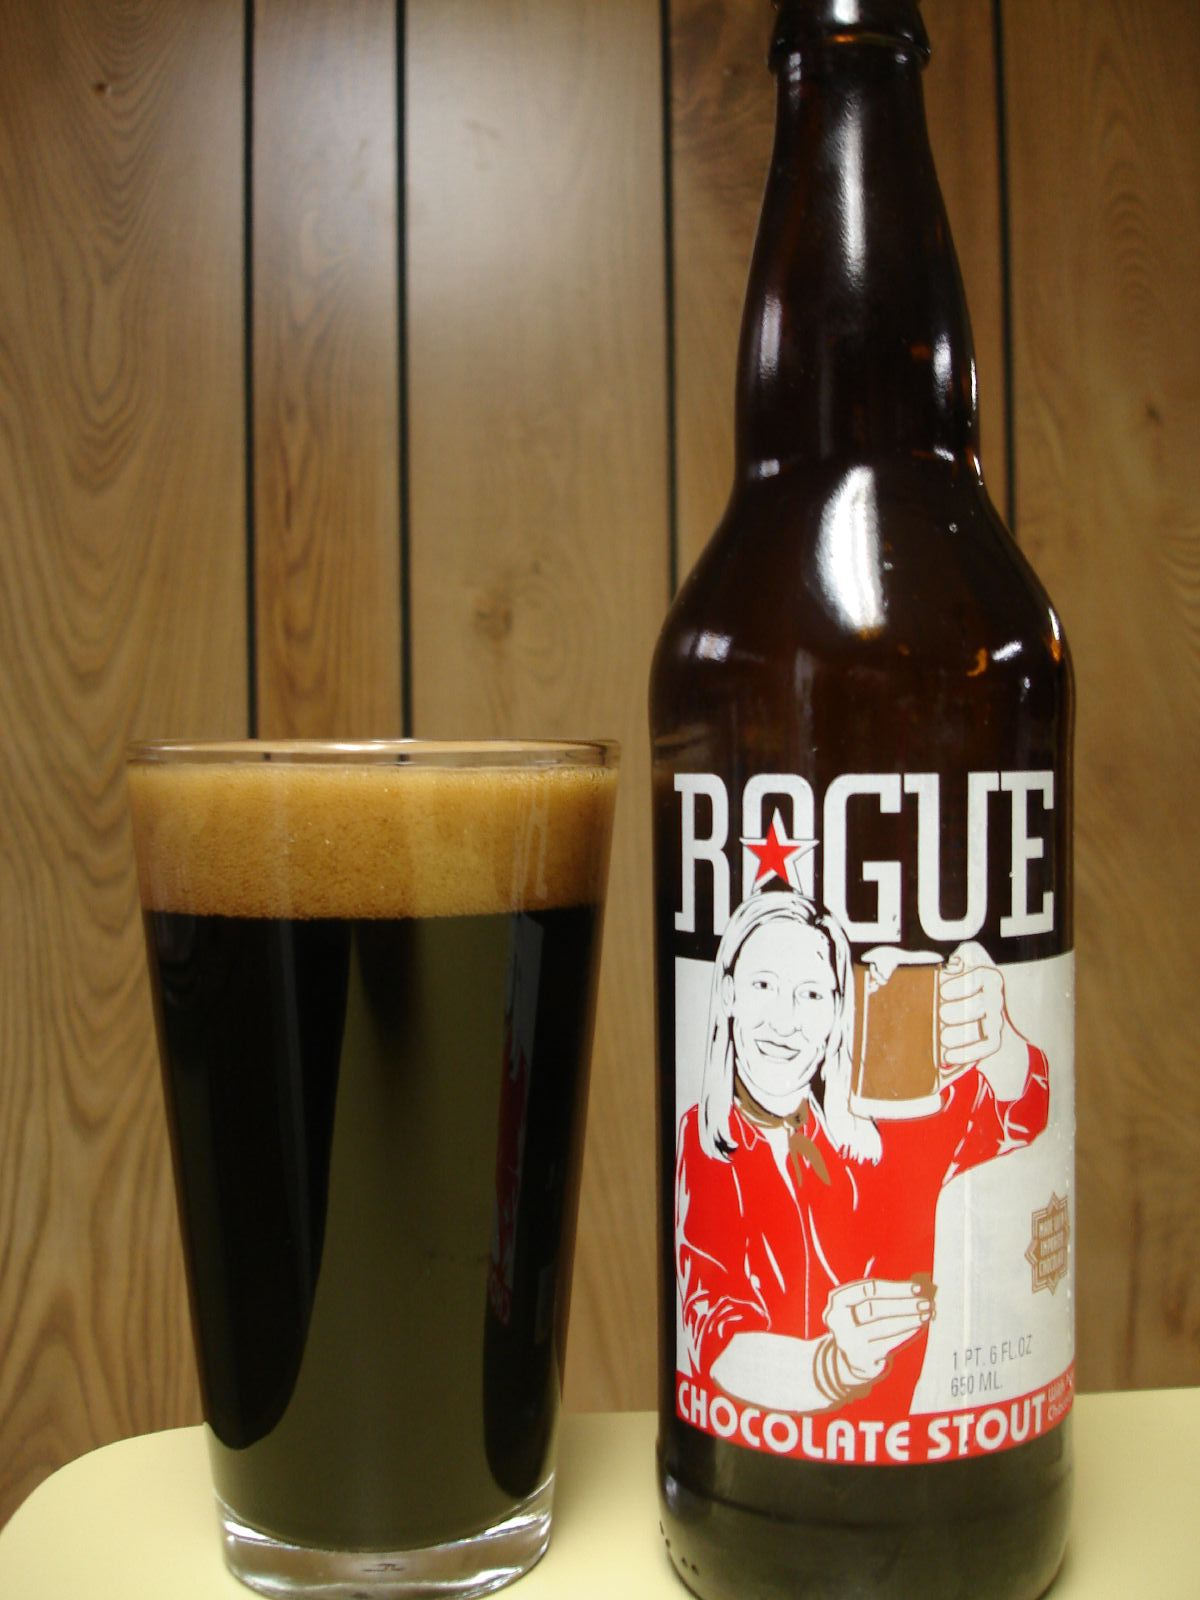 Rogue S Chocolate Stout Beer